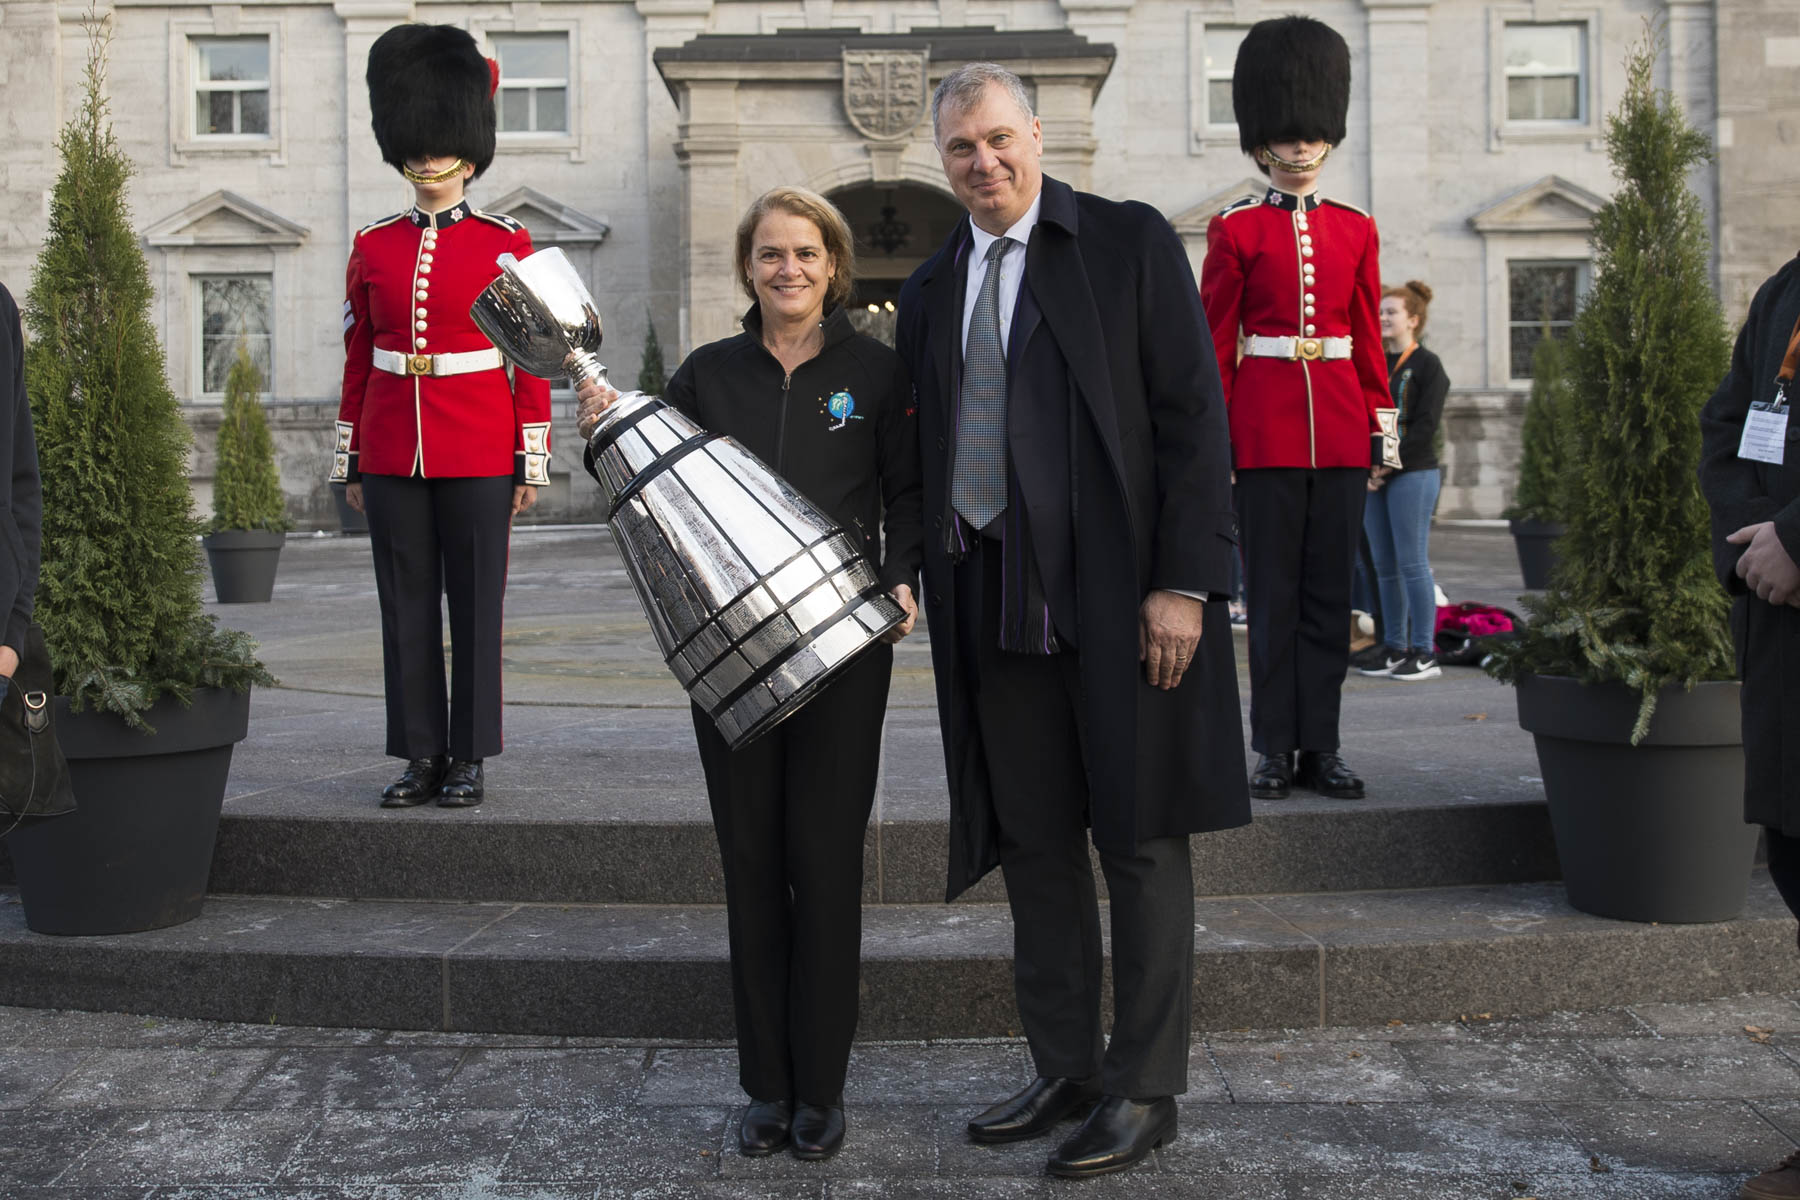 Her Excellency is pictured with Mr. Randy Ambrosie, Canadian Football League (CFL) Commissioner, in front of Rideau Hall.